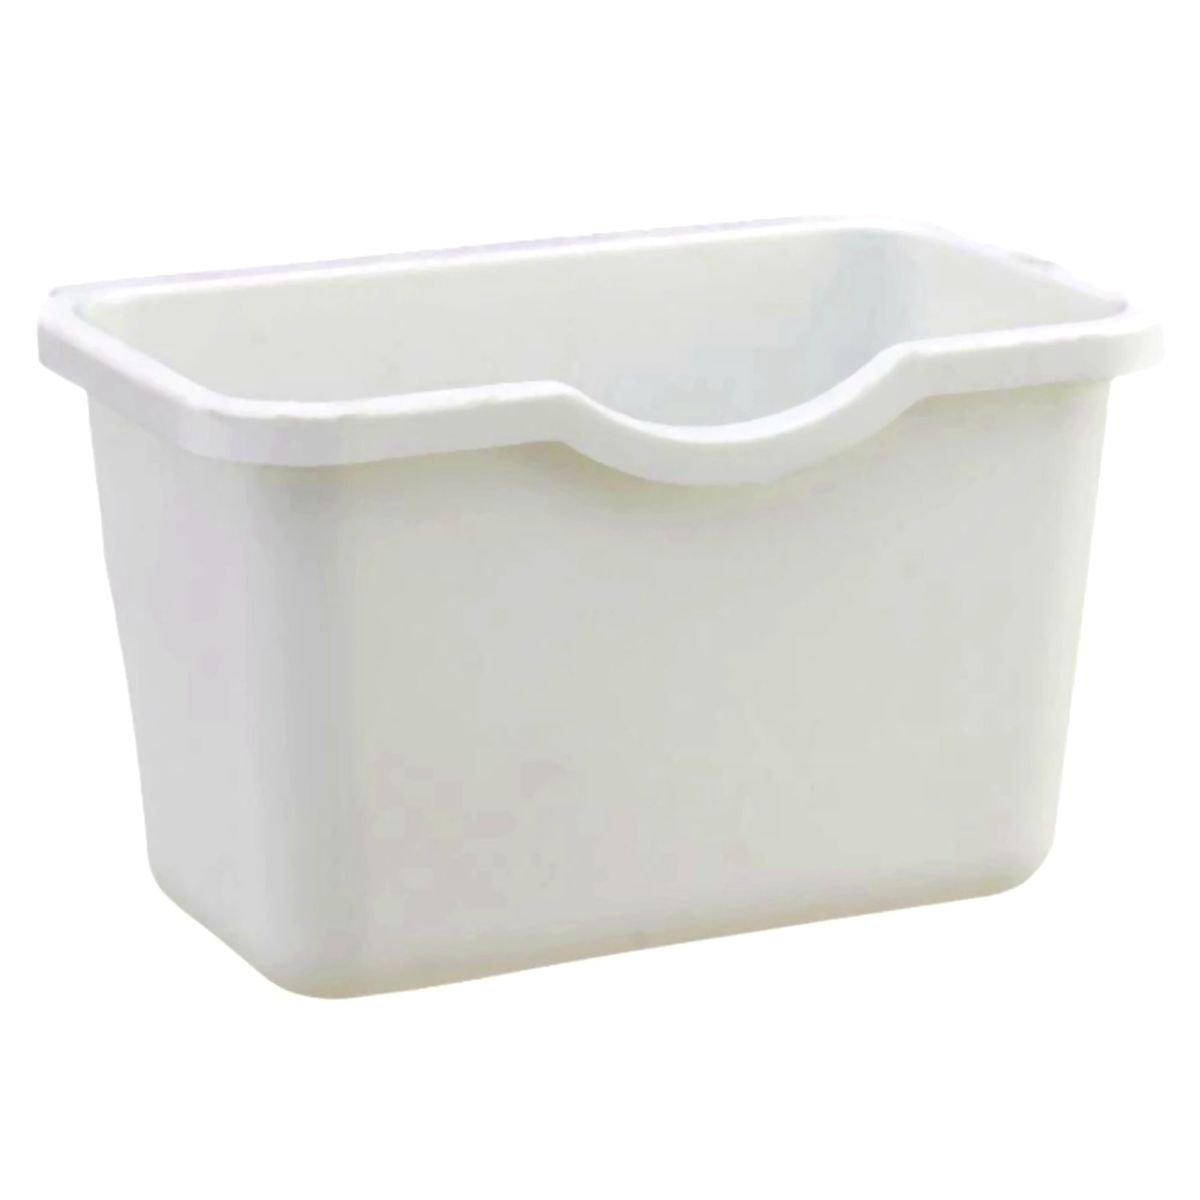 Creative Plastic Basket Wastebaskets VANORIG Multifuctional Hanging Trash Can Waste Bins Deskside Recycling Garbage Bowls Can Containers ,Pack of 3 (White)